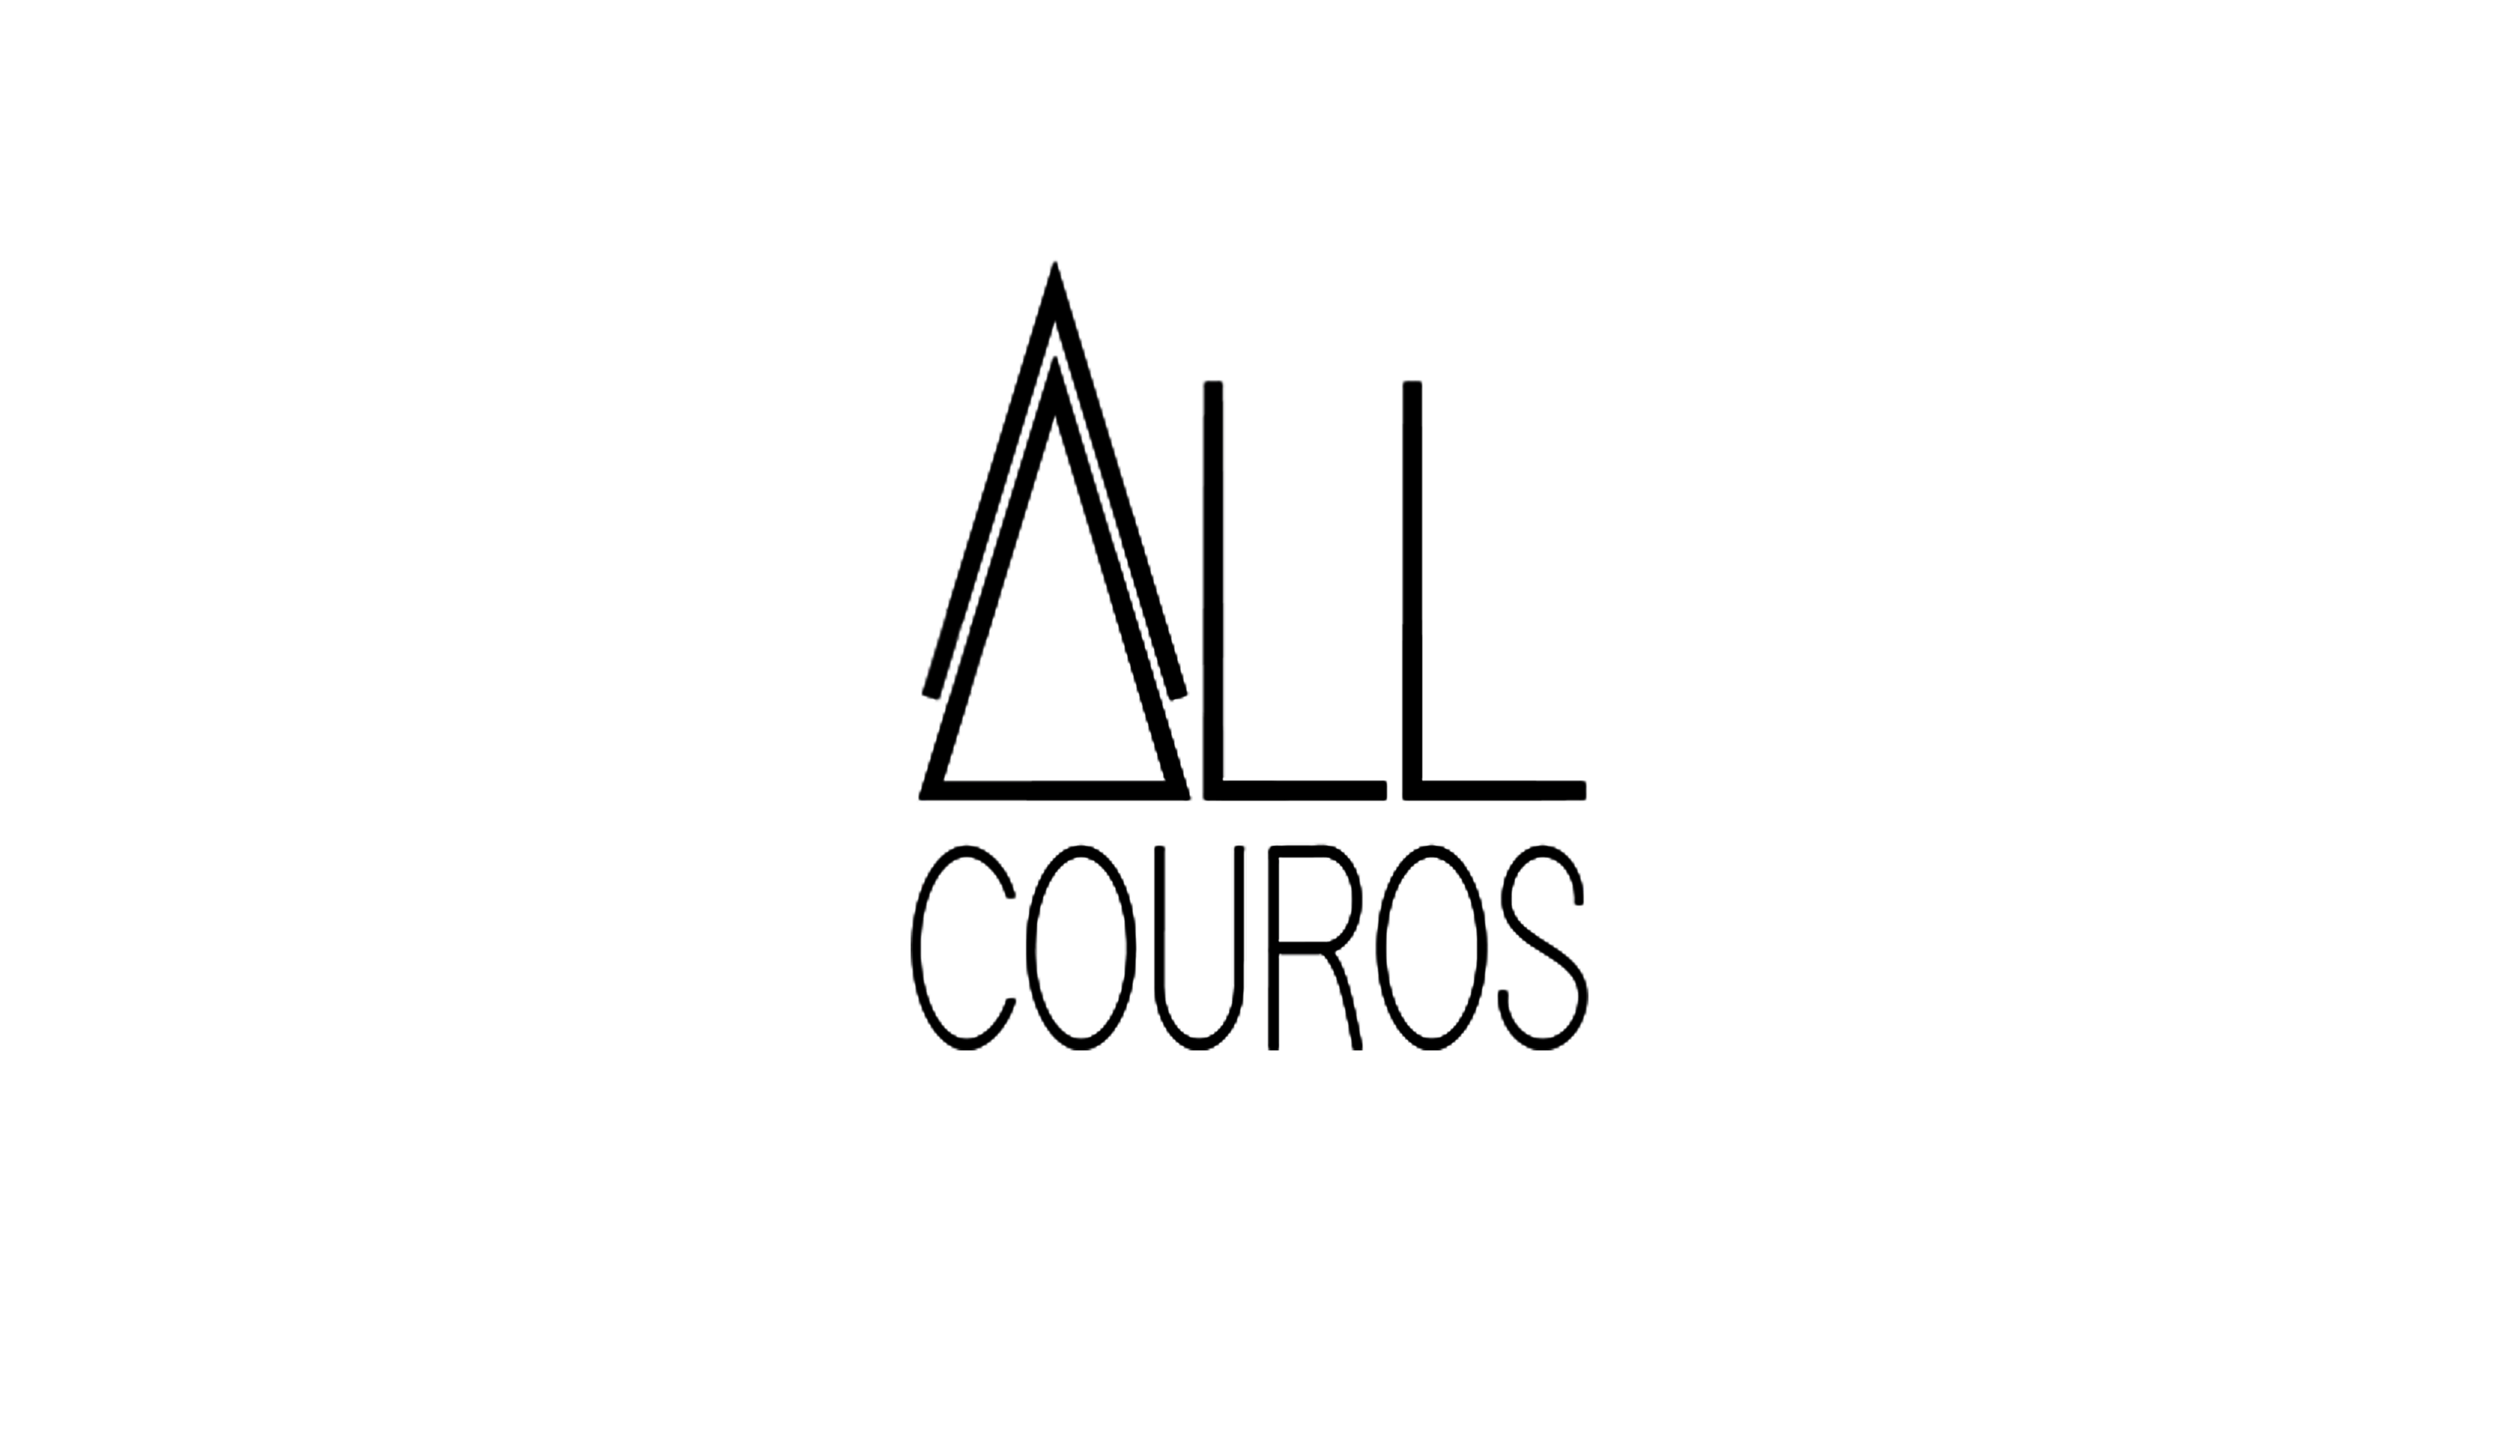 Untitled1-copy_0007_All_Couros_Cinza_Logo.png.png